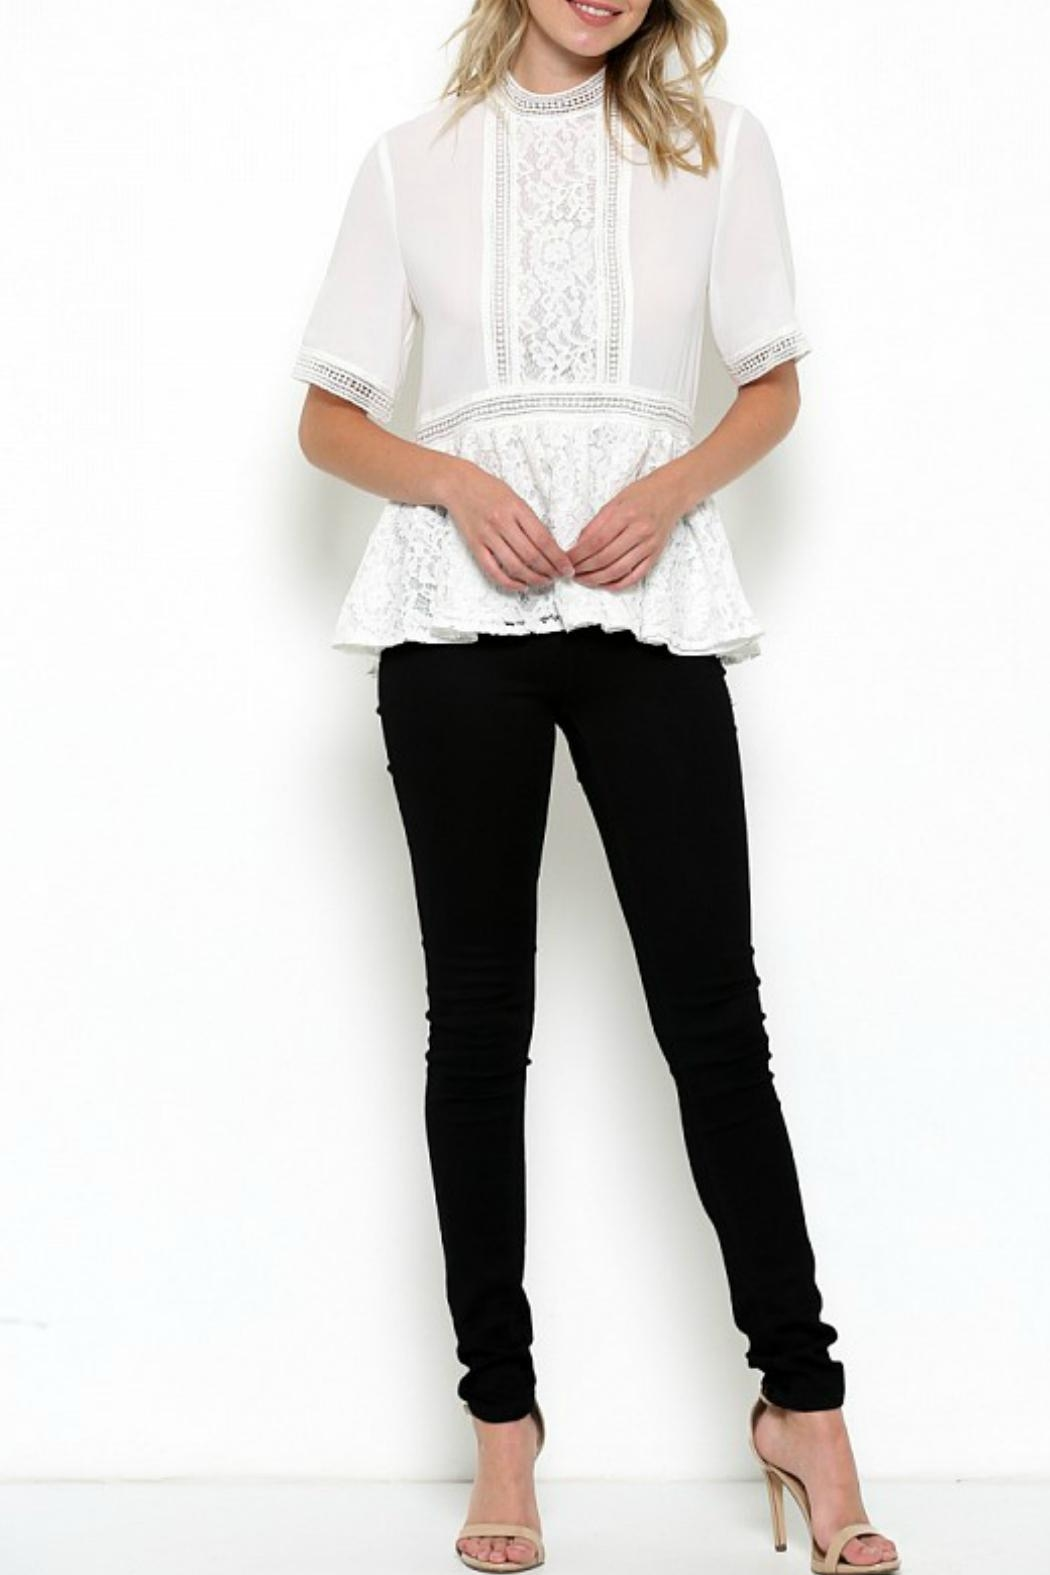 Elegance by Sarah Ruhs Chiffon Lace Blouse - Main Image